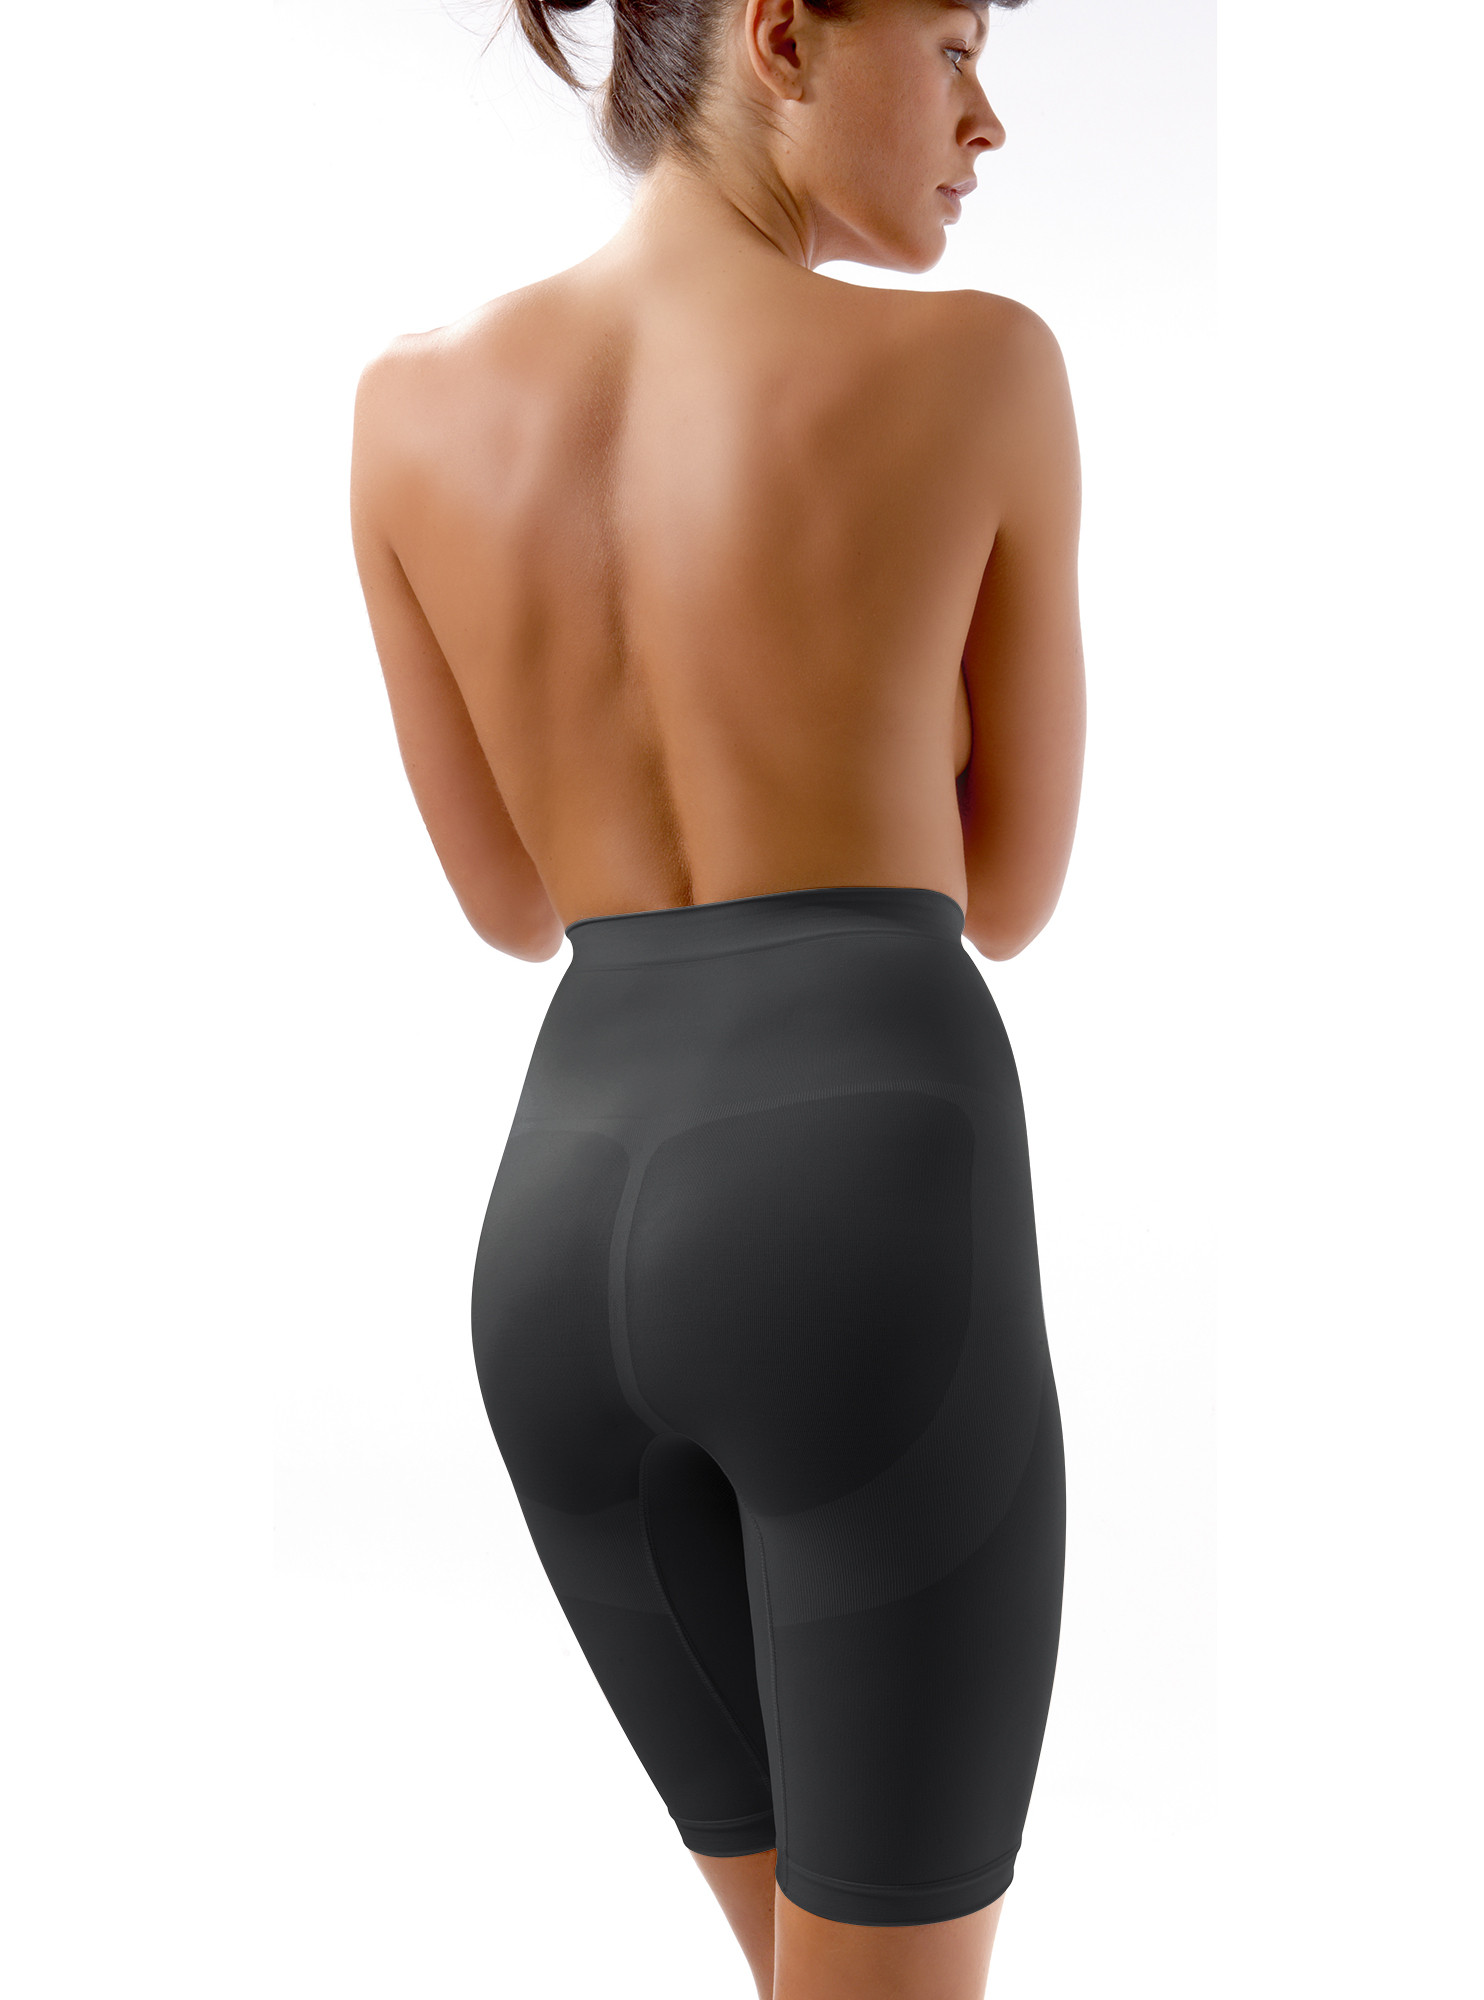 High-waist shaping girdle with tummy control, firm compression